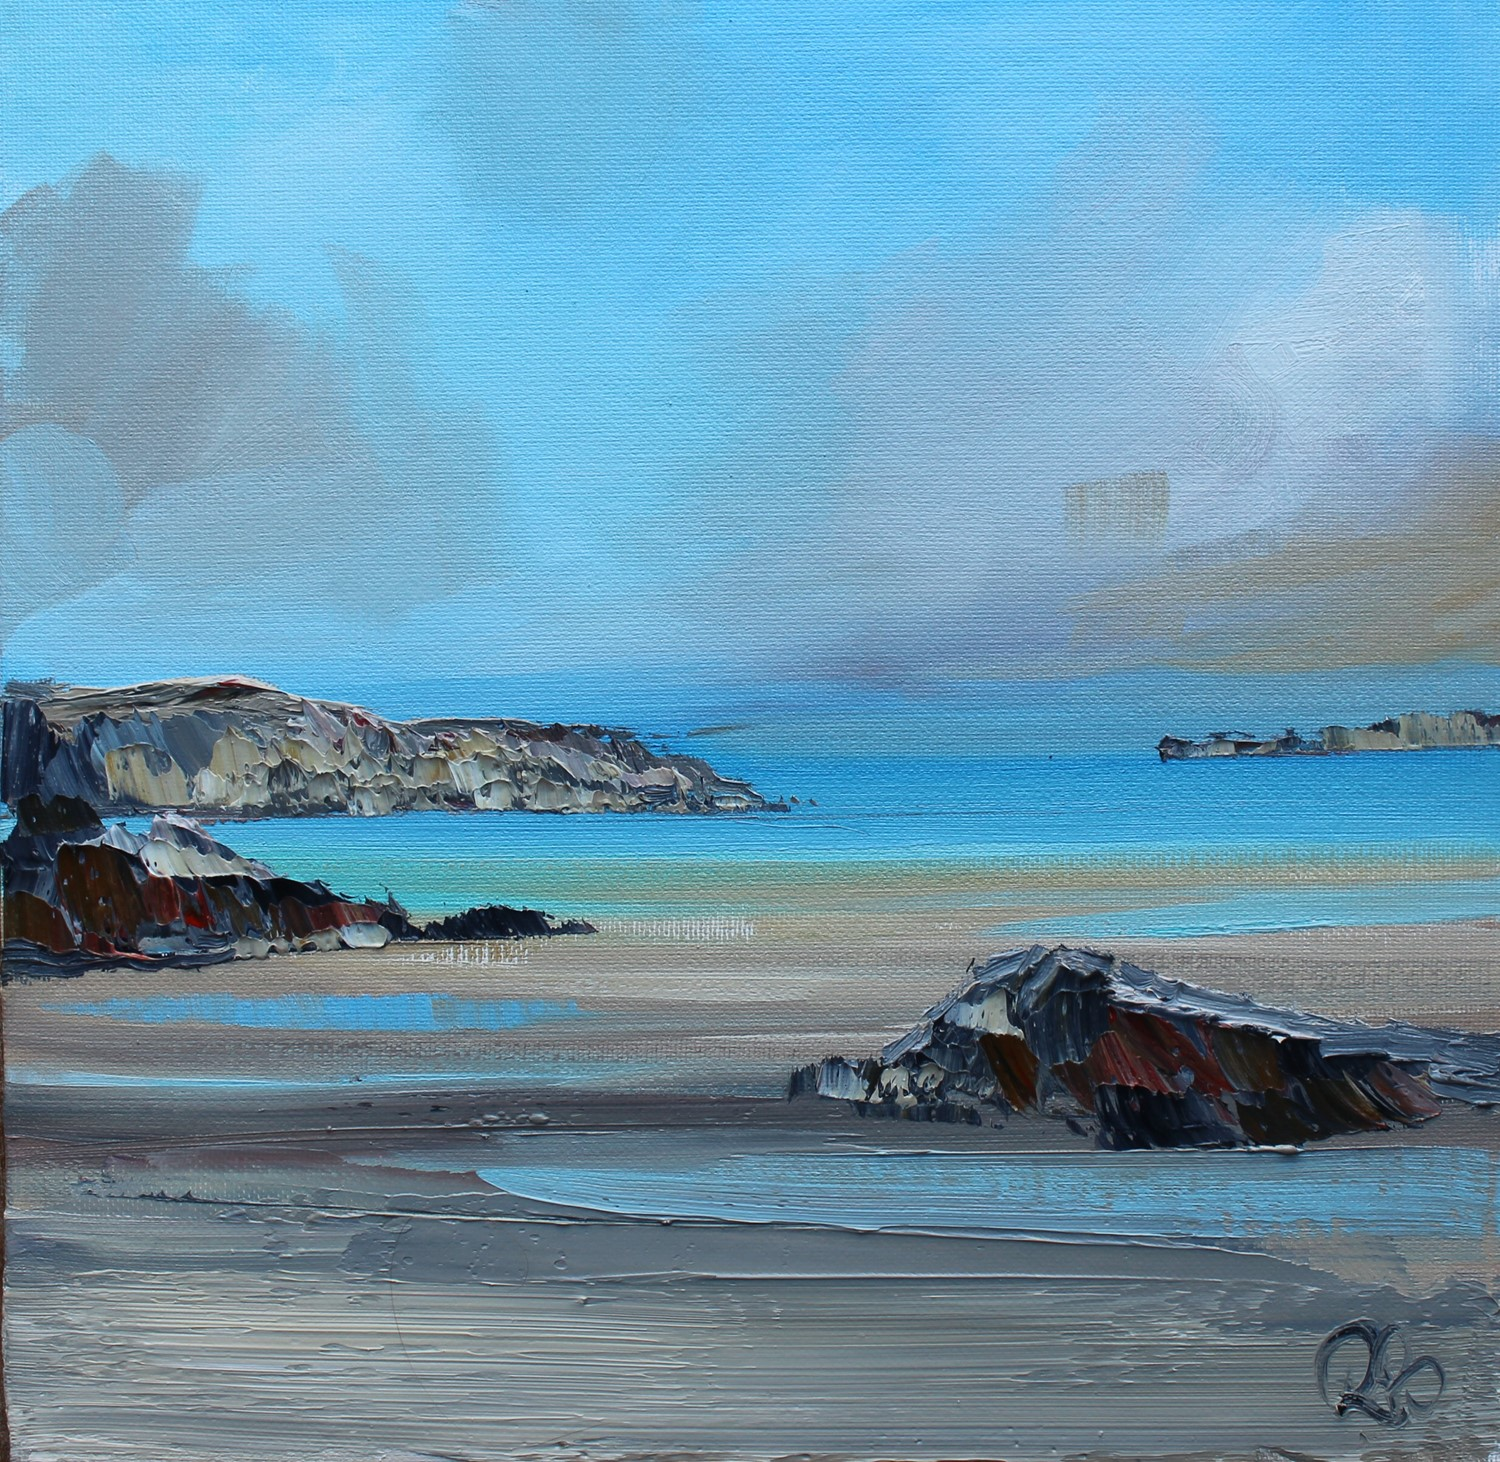 'Memories of Mull' by artist Rosanne Barr